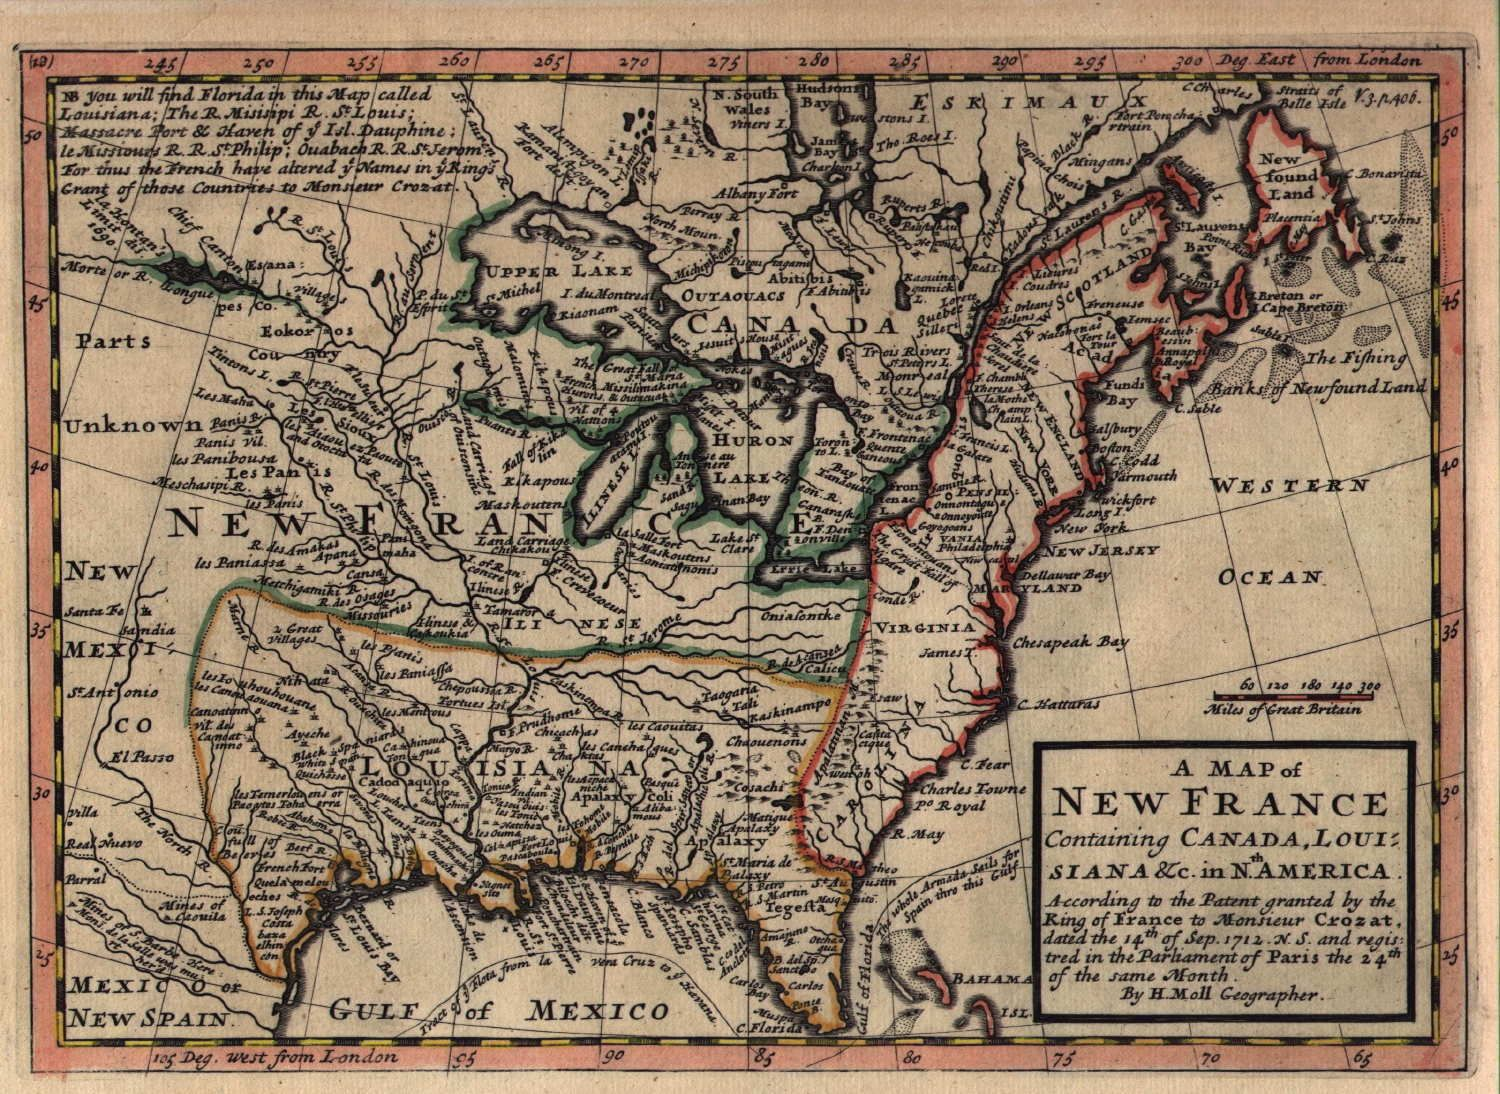 High quality maps of 18th century America. Page has links